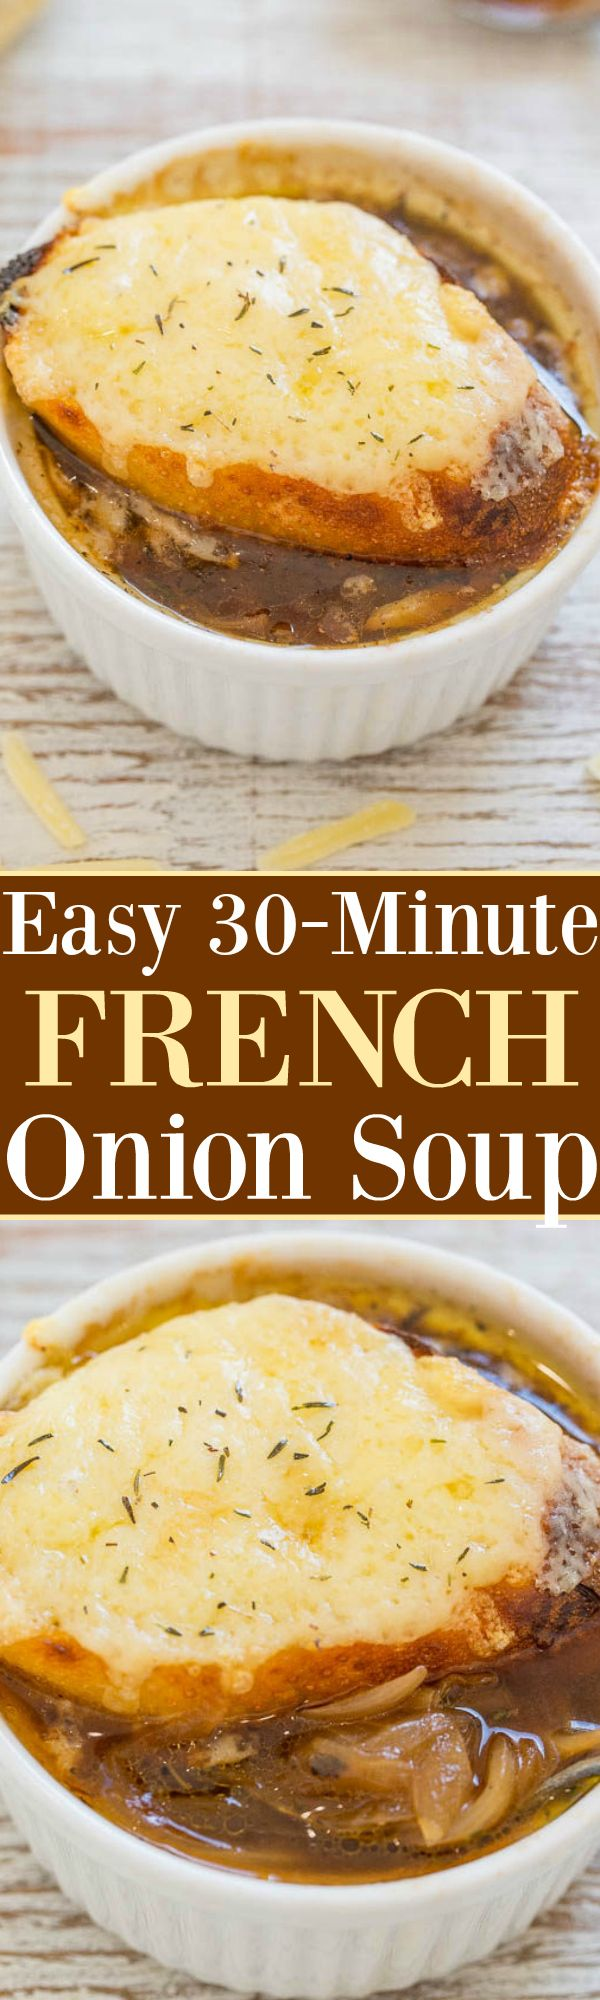 Easy One-Hour French Onion Soup - Averie Cooks